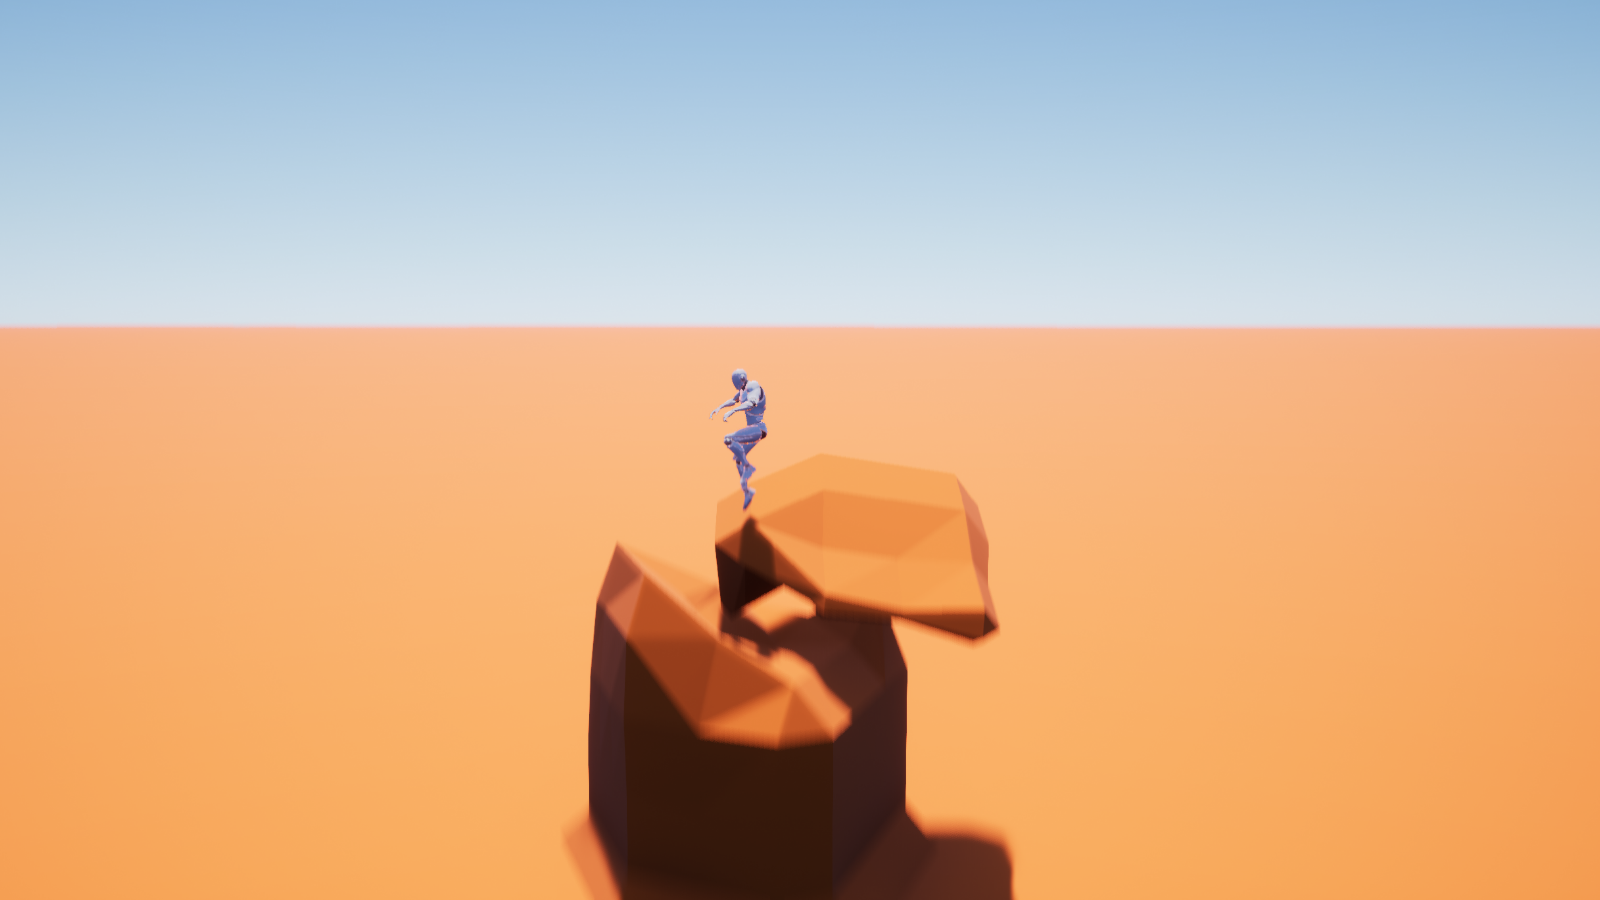 Voxel Physics (Pro only)